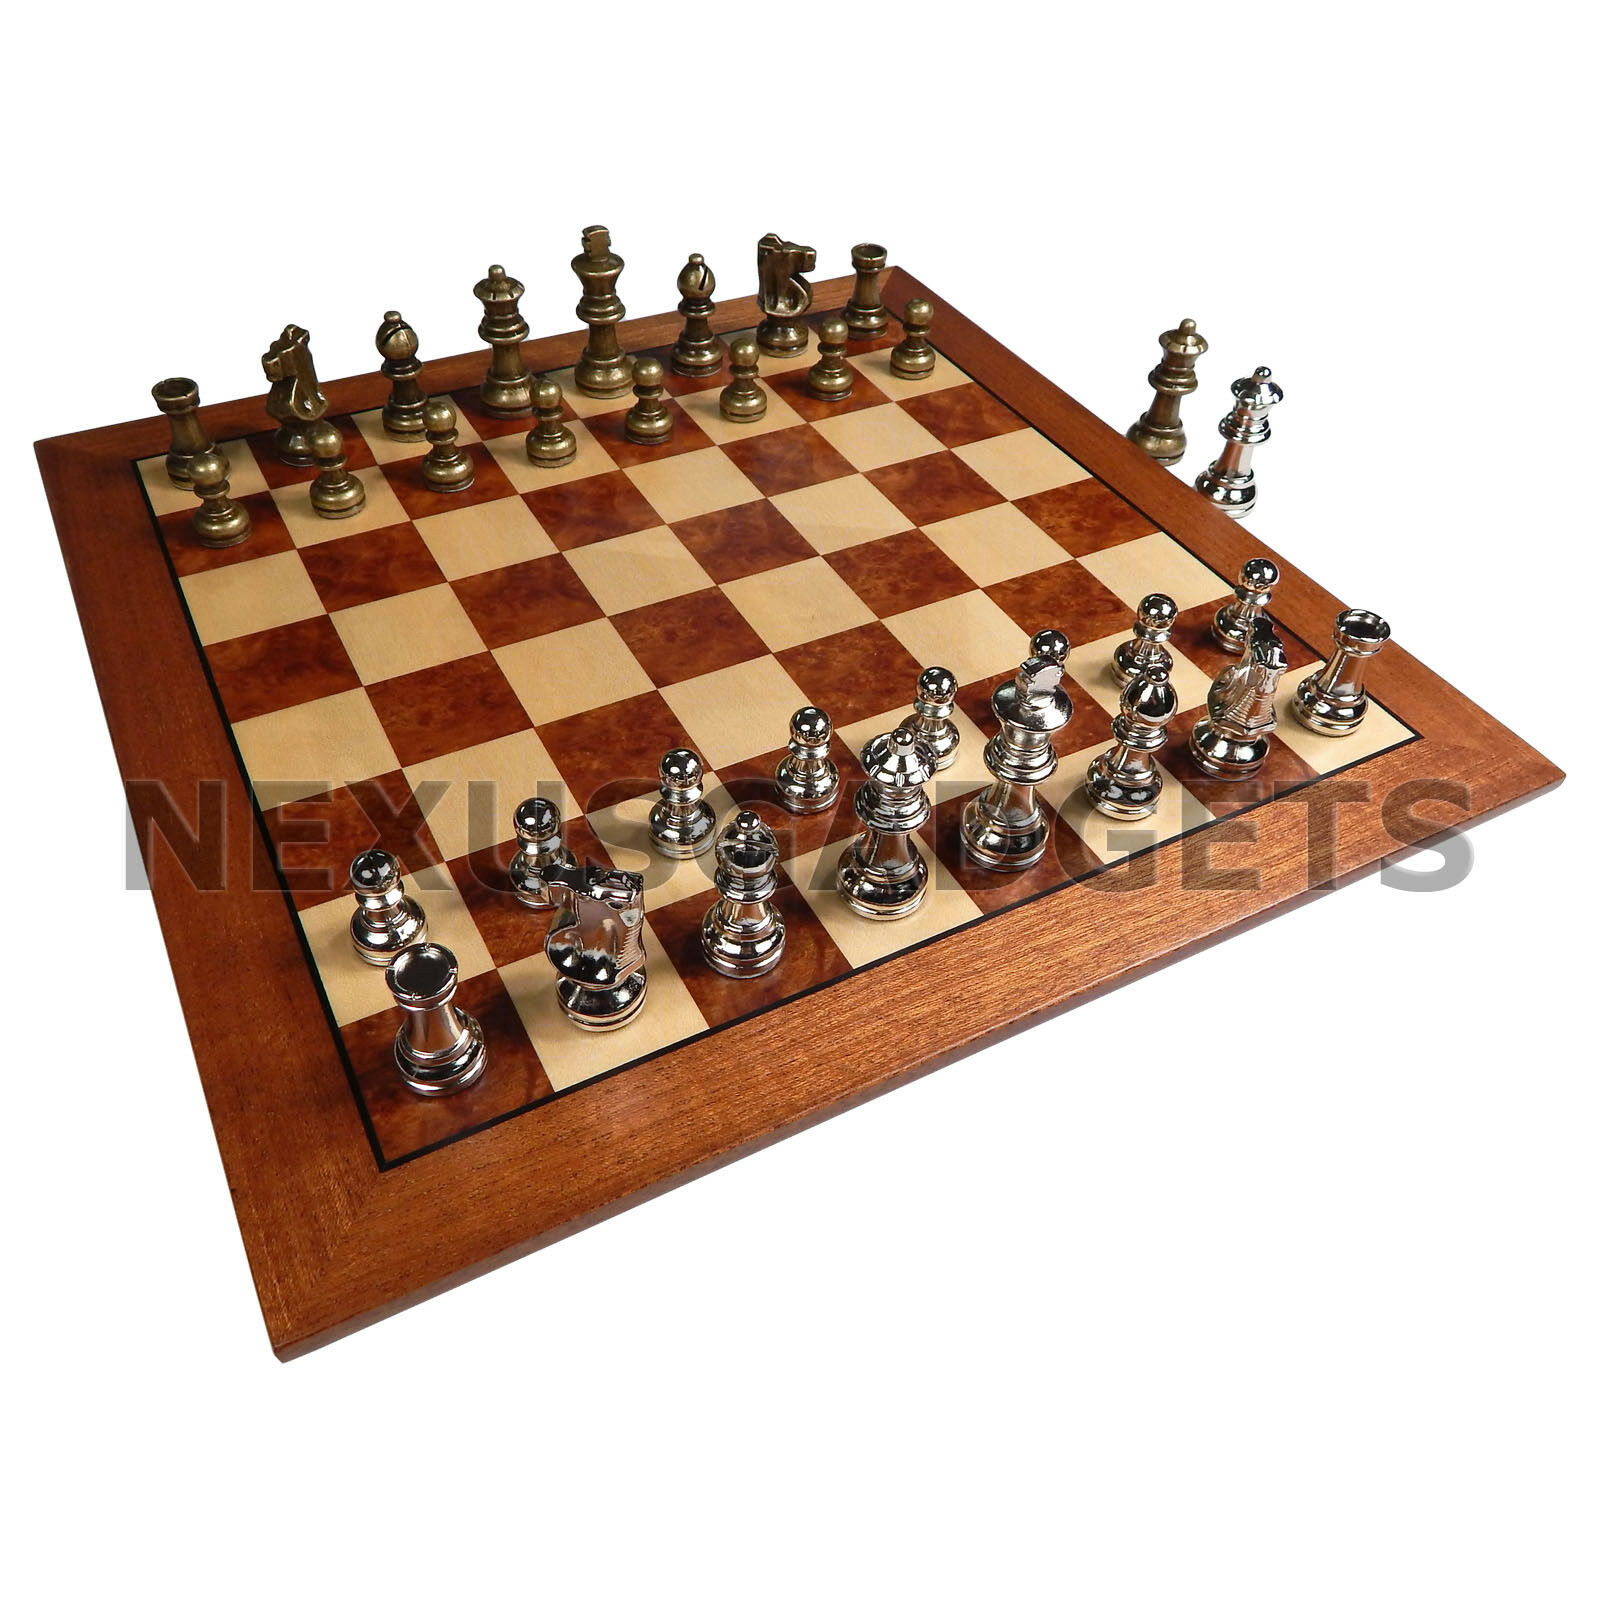 Hali Chess Game Set 15 INCH Inlaid Wood Board, Metal Pieces w  Extra Queens